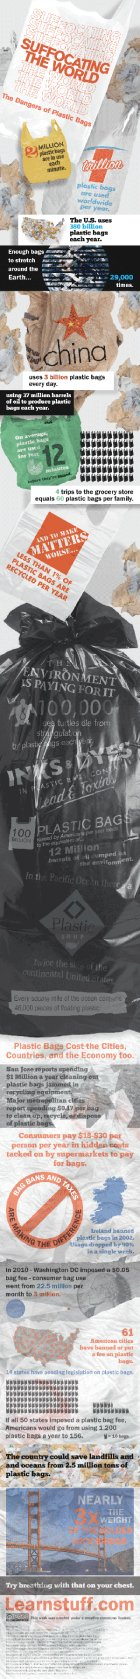 Plastic Bags: Suffocating The World